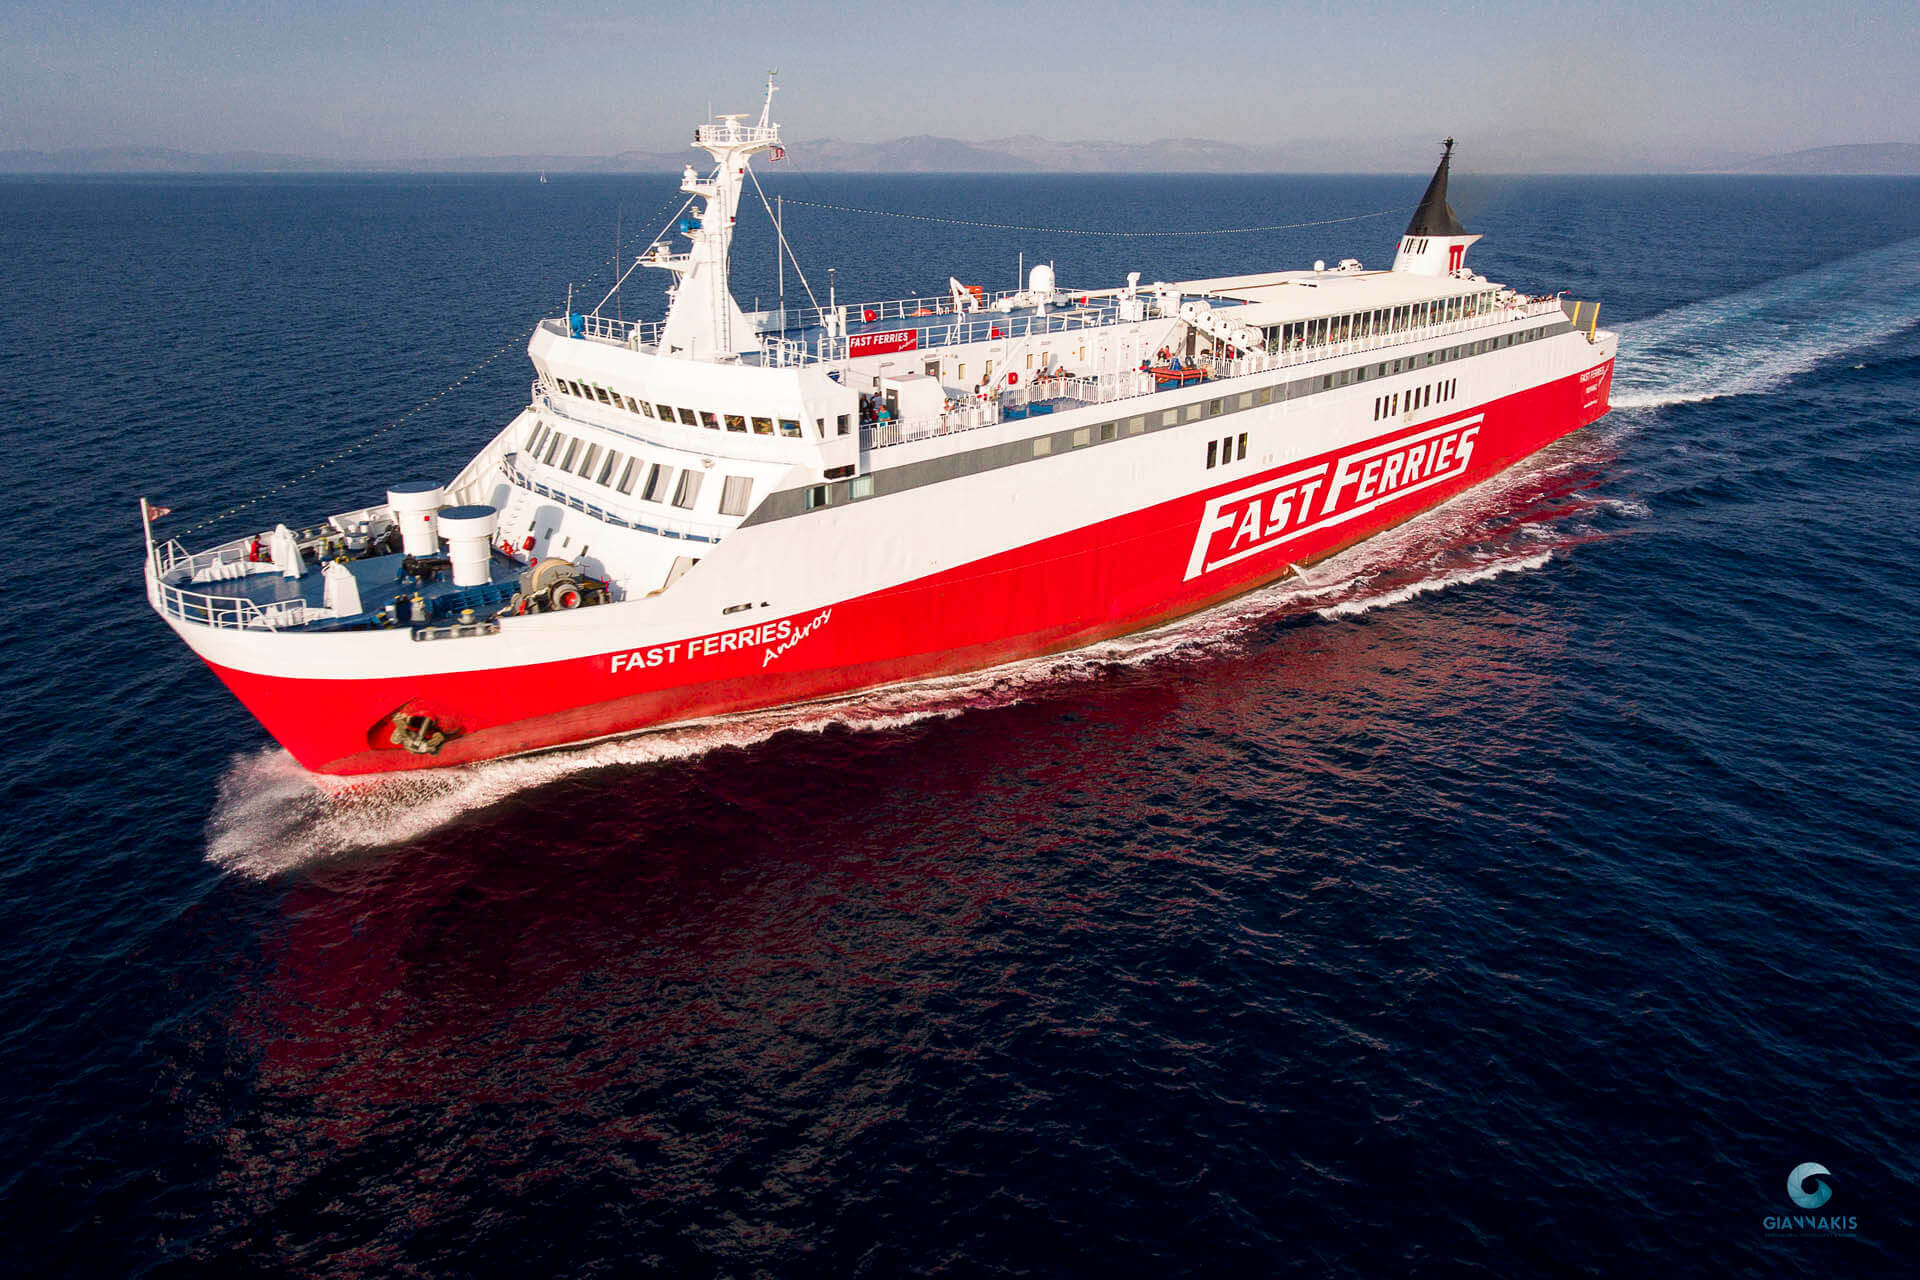 Fast Ferries: Ferry boat tickets, Reviews, Photos, Boats